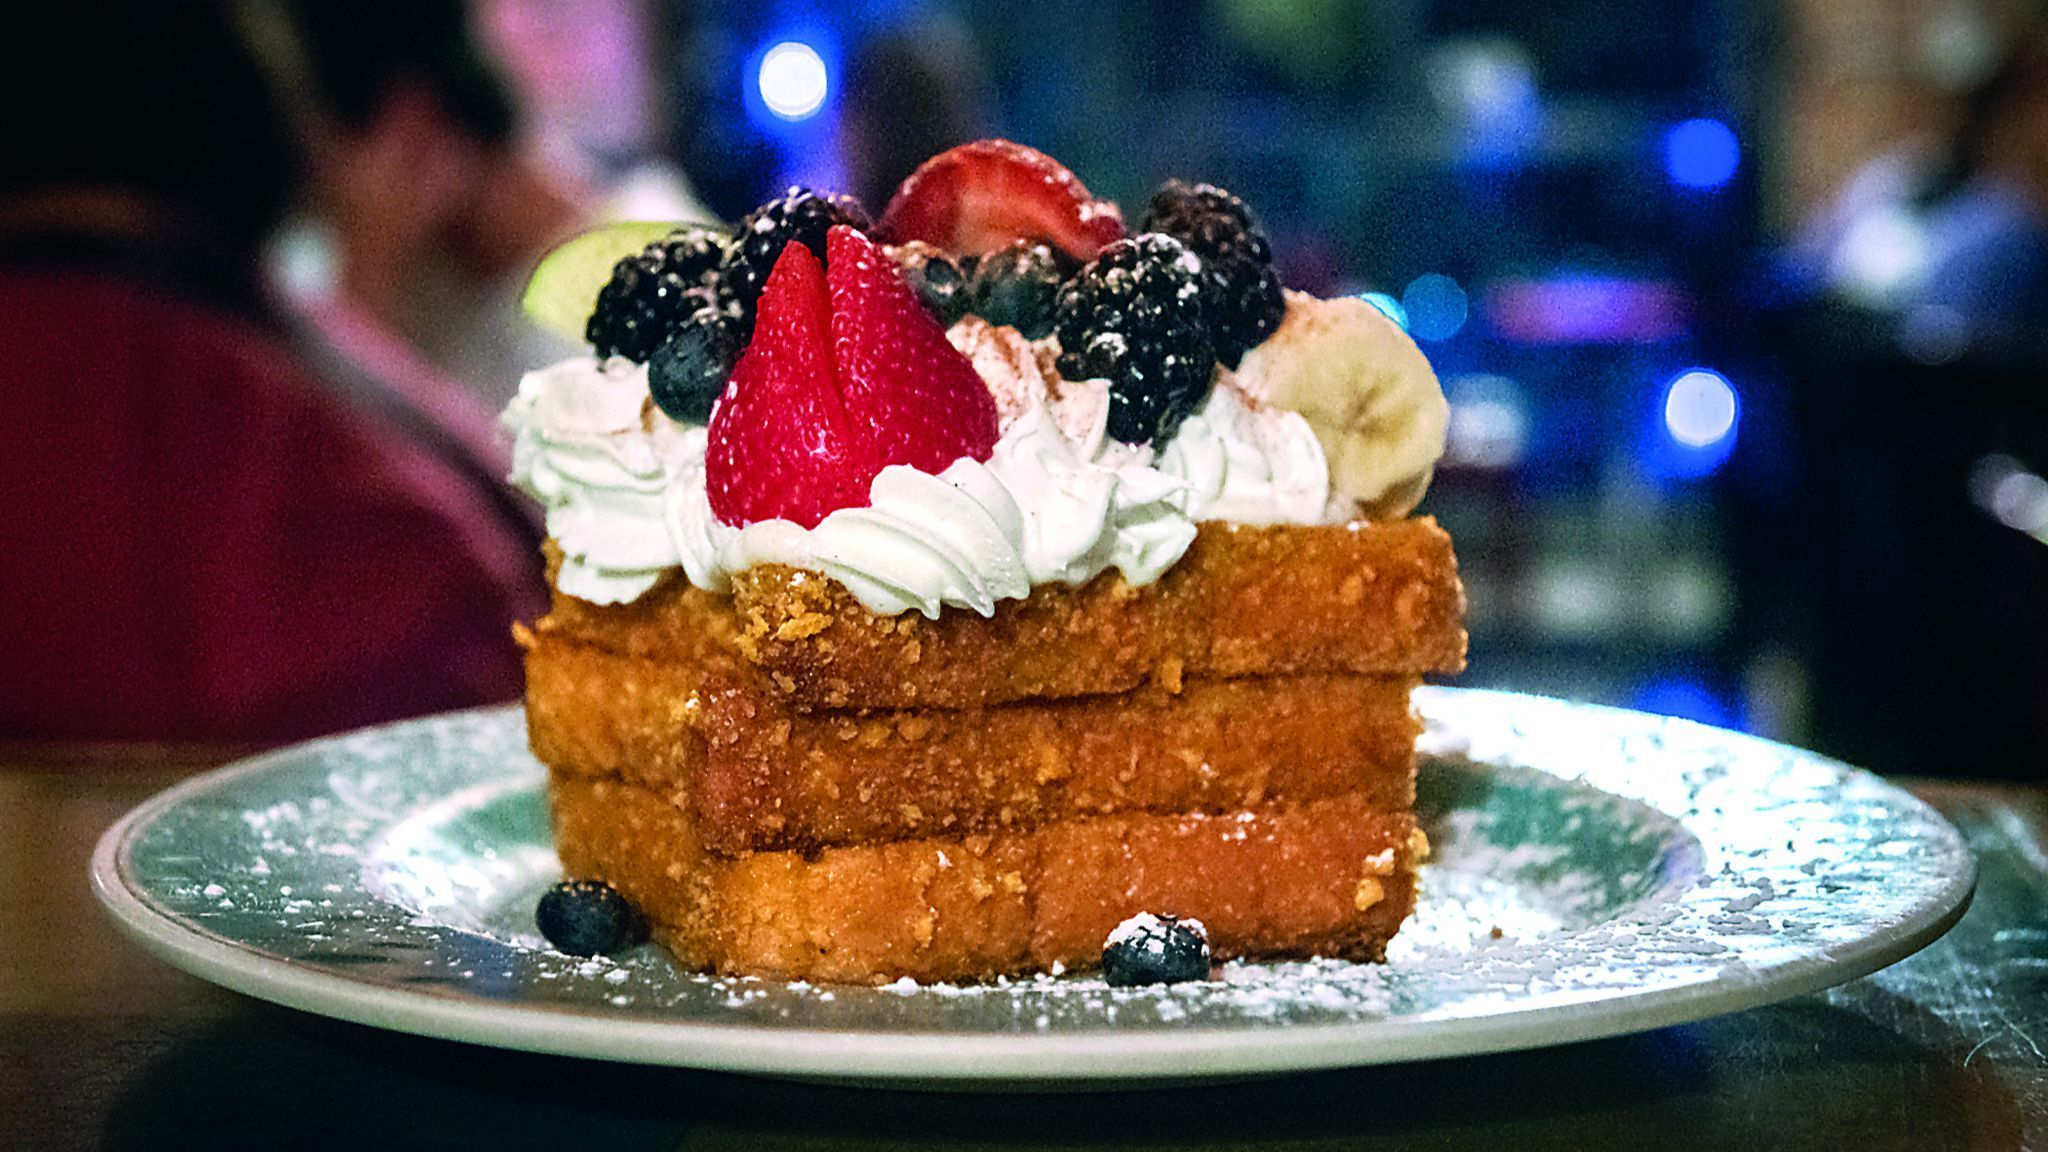 The Captain Crunch French Toast served at the Blue Moon Cafe in Fells Point. The restaurant is open